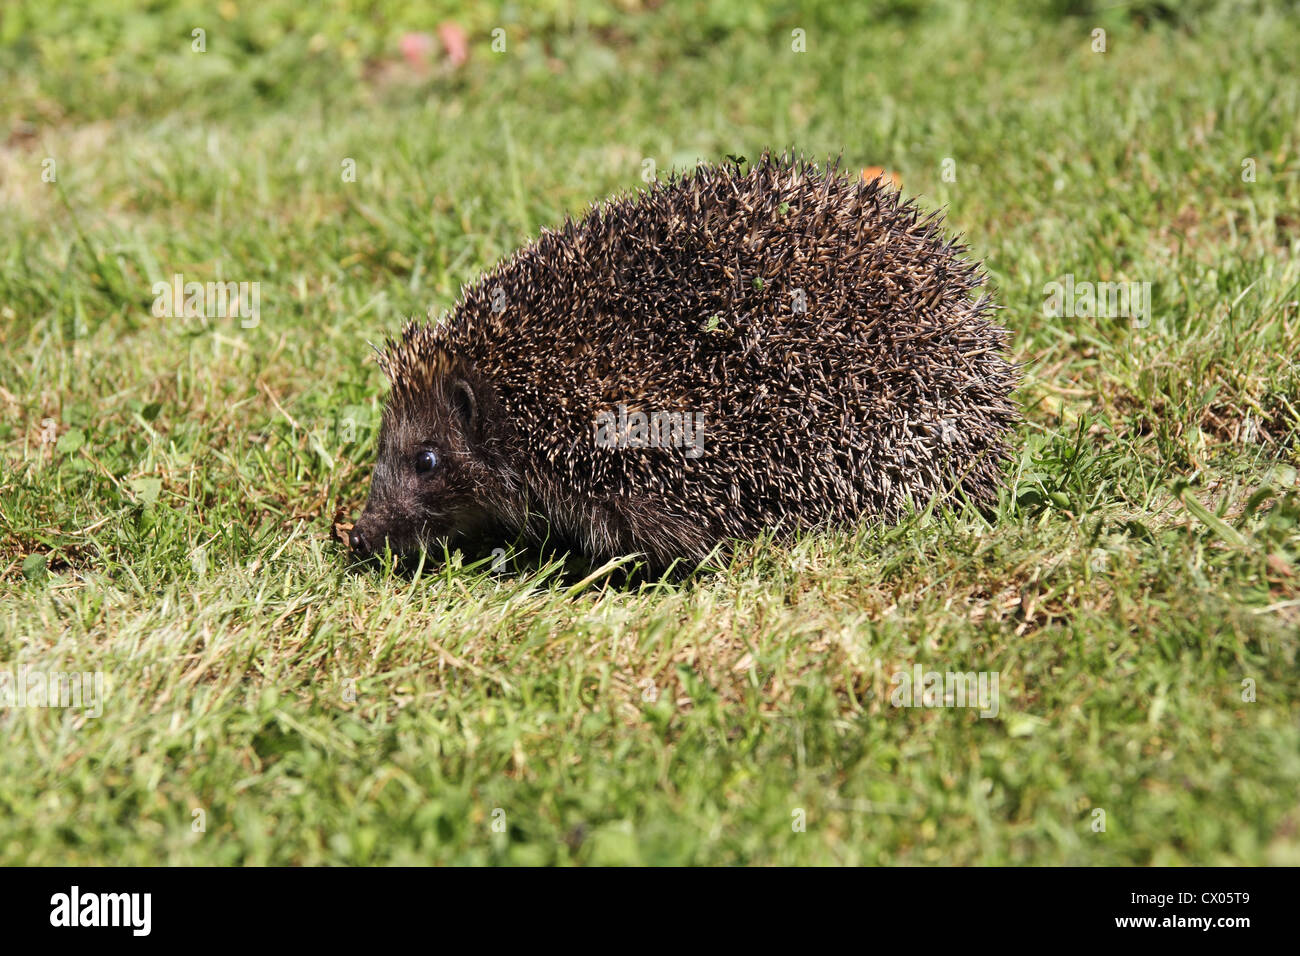 Young hedgehog sleeping in the grass - Stock Image